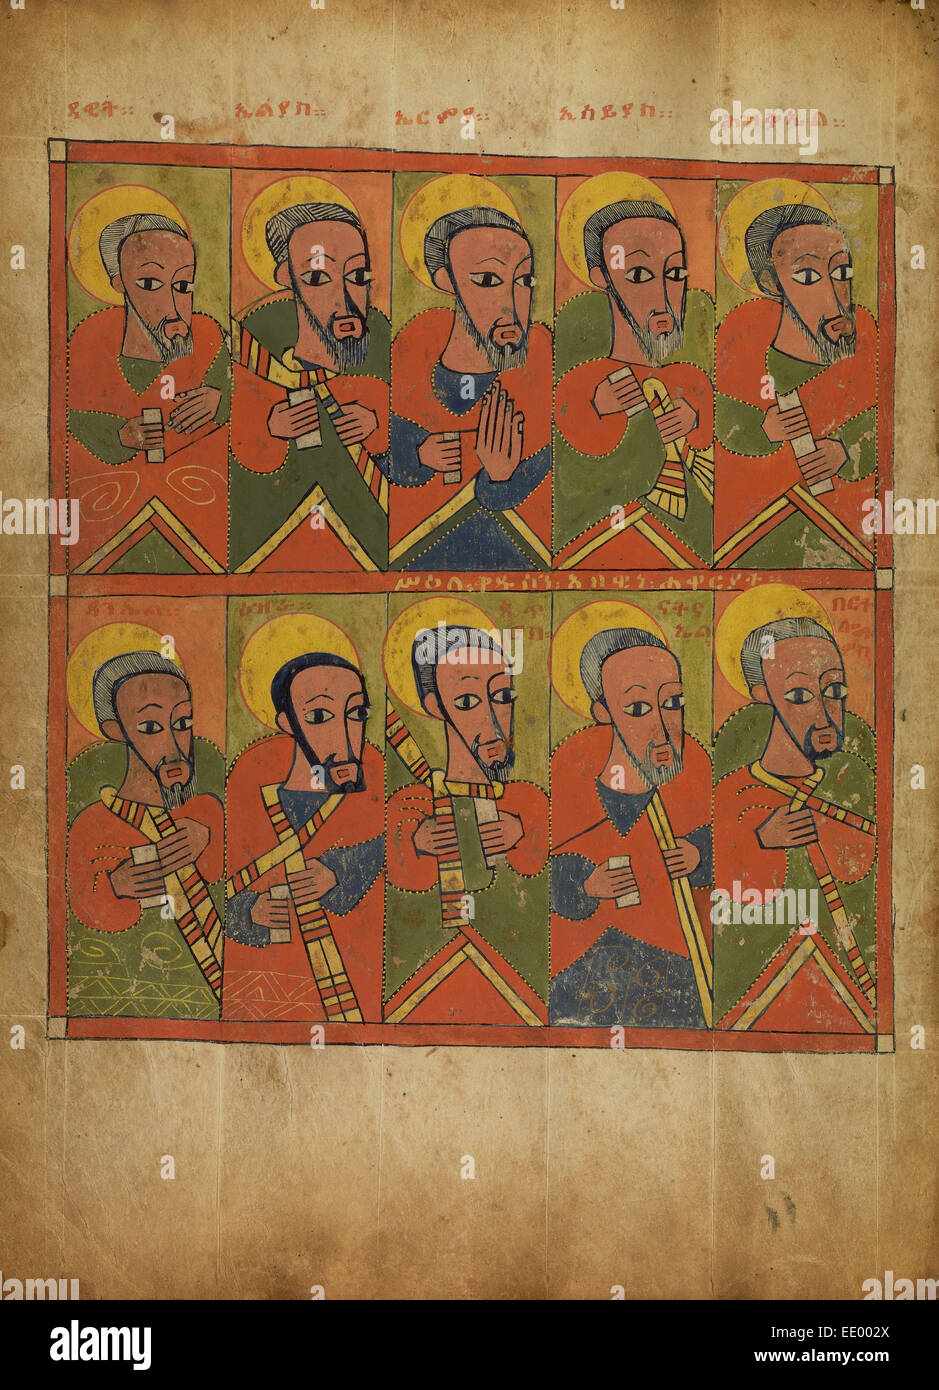 The Prophets and the Apostles; Unknown; Ethiopia, Africa; about 1480 - 1520; Tempera on parchment - Stock Image